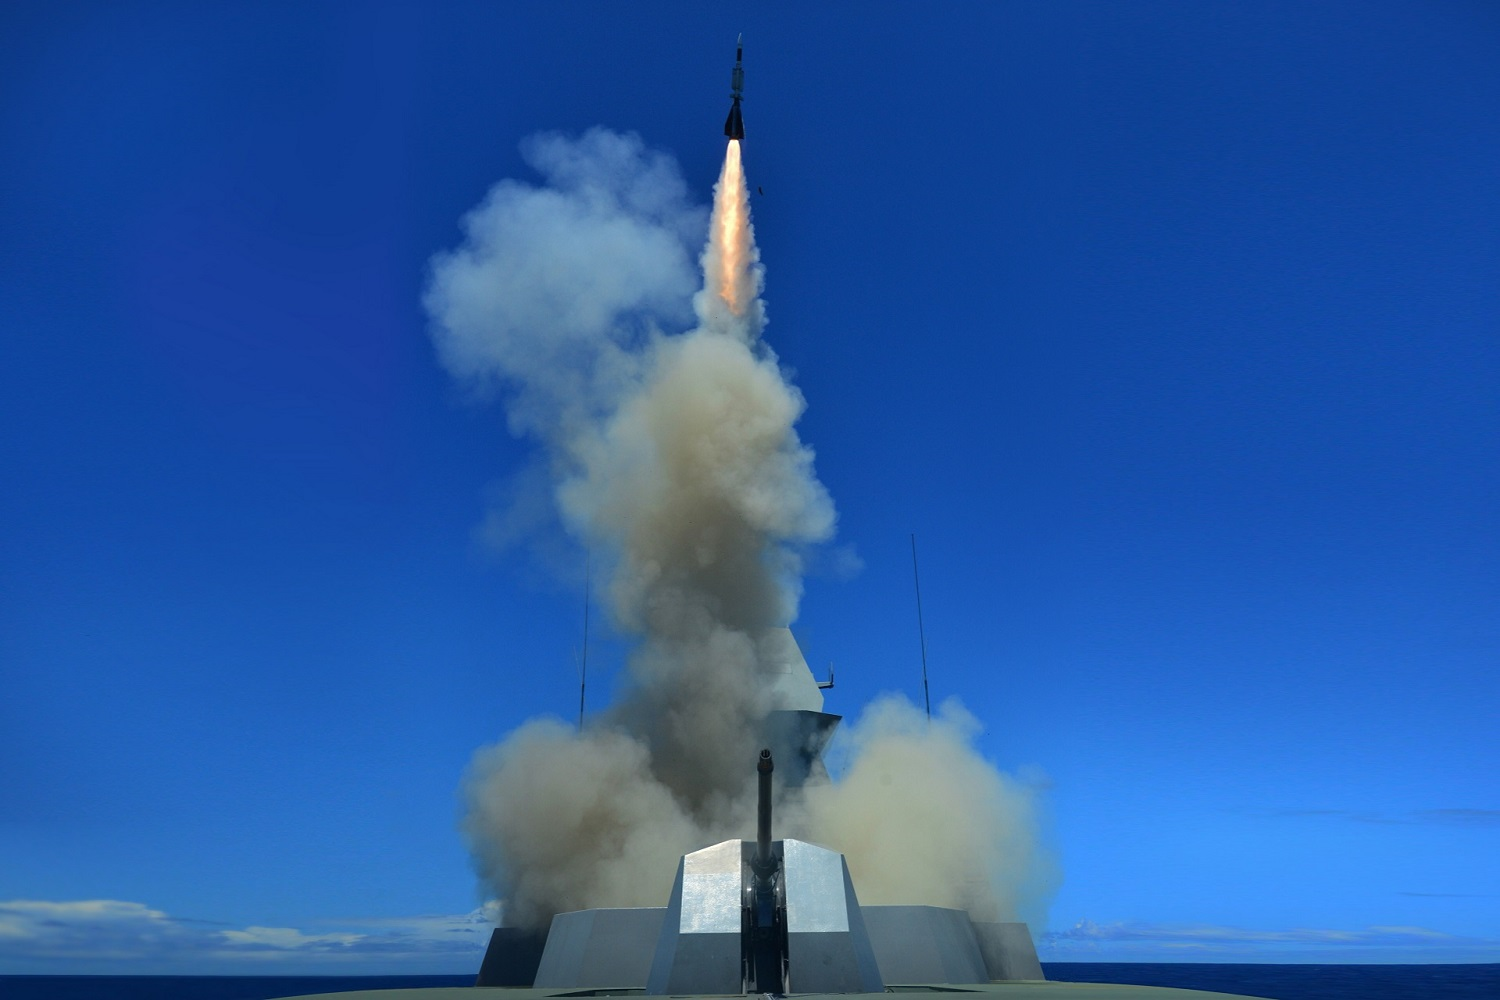 RSS Supreme Succesful Firing Aster SAM During RIMPAC 2020